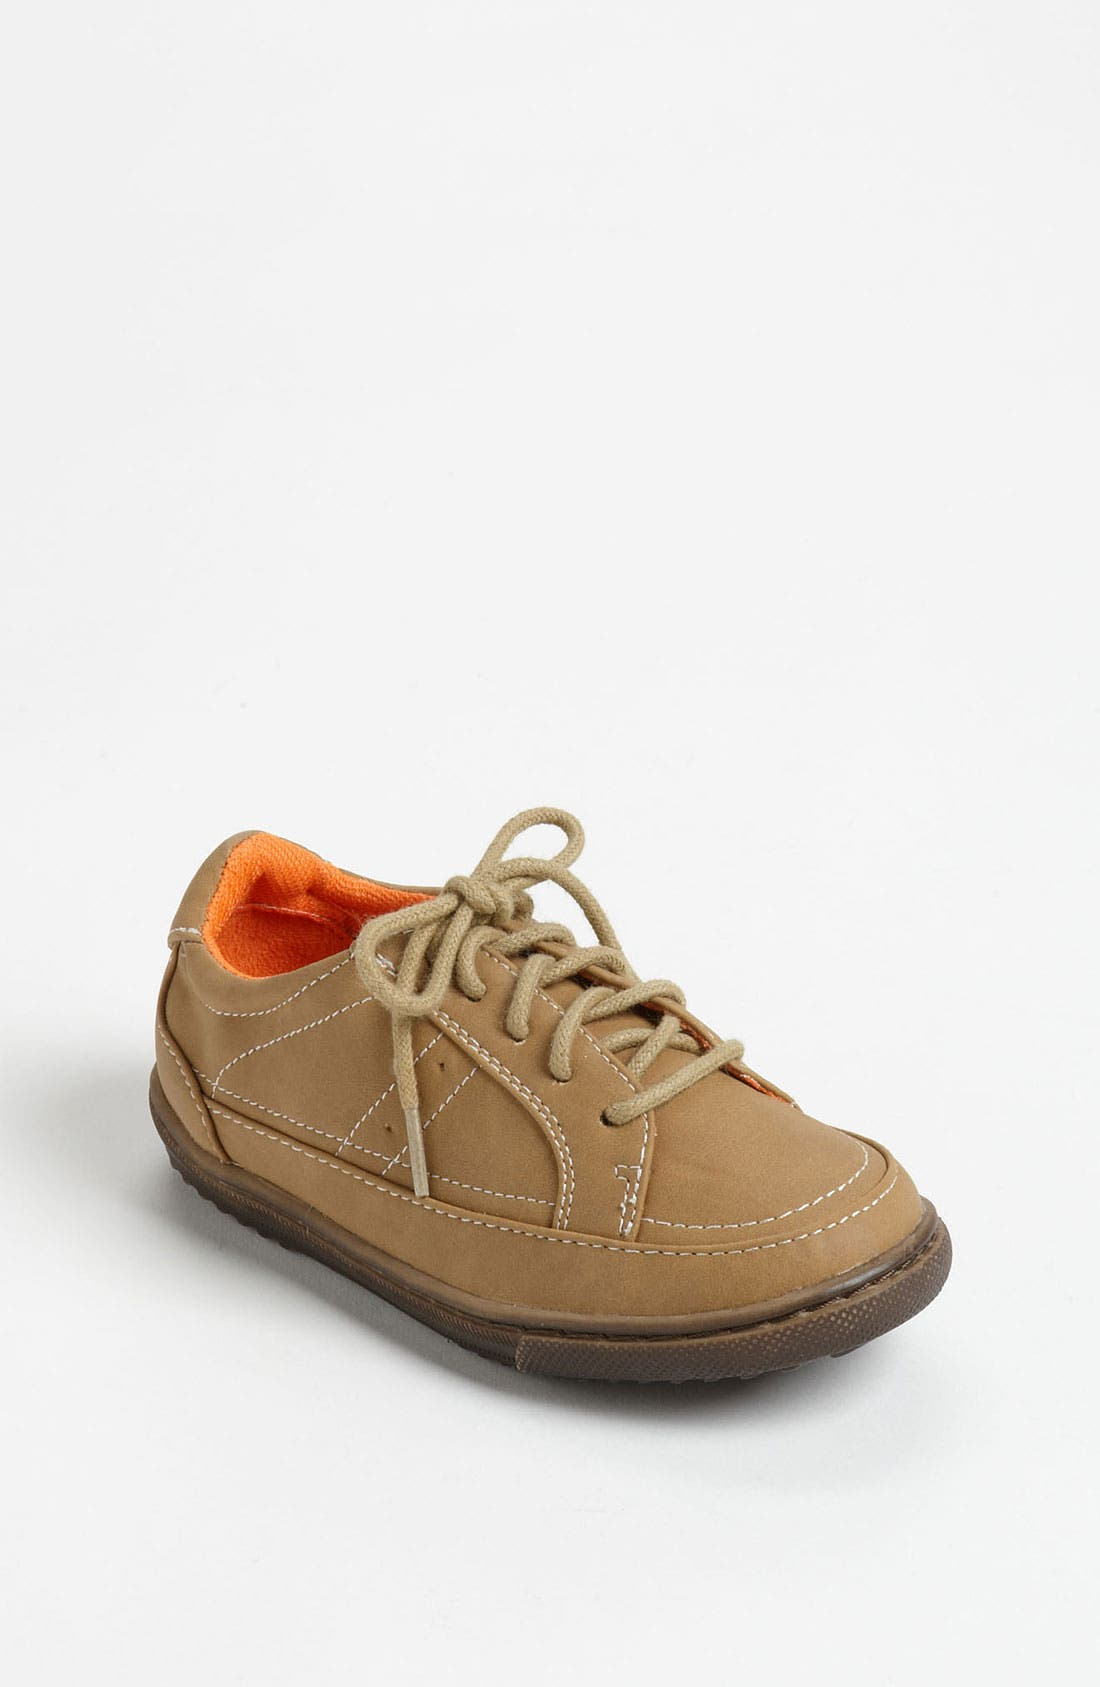 Alternate Image 1 Selected - Cole Haan 'Anthony Sport' Sneaker (Toddler, Little Kid & Big Kid)